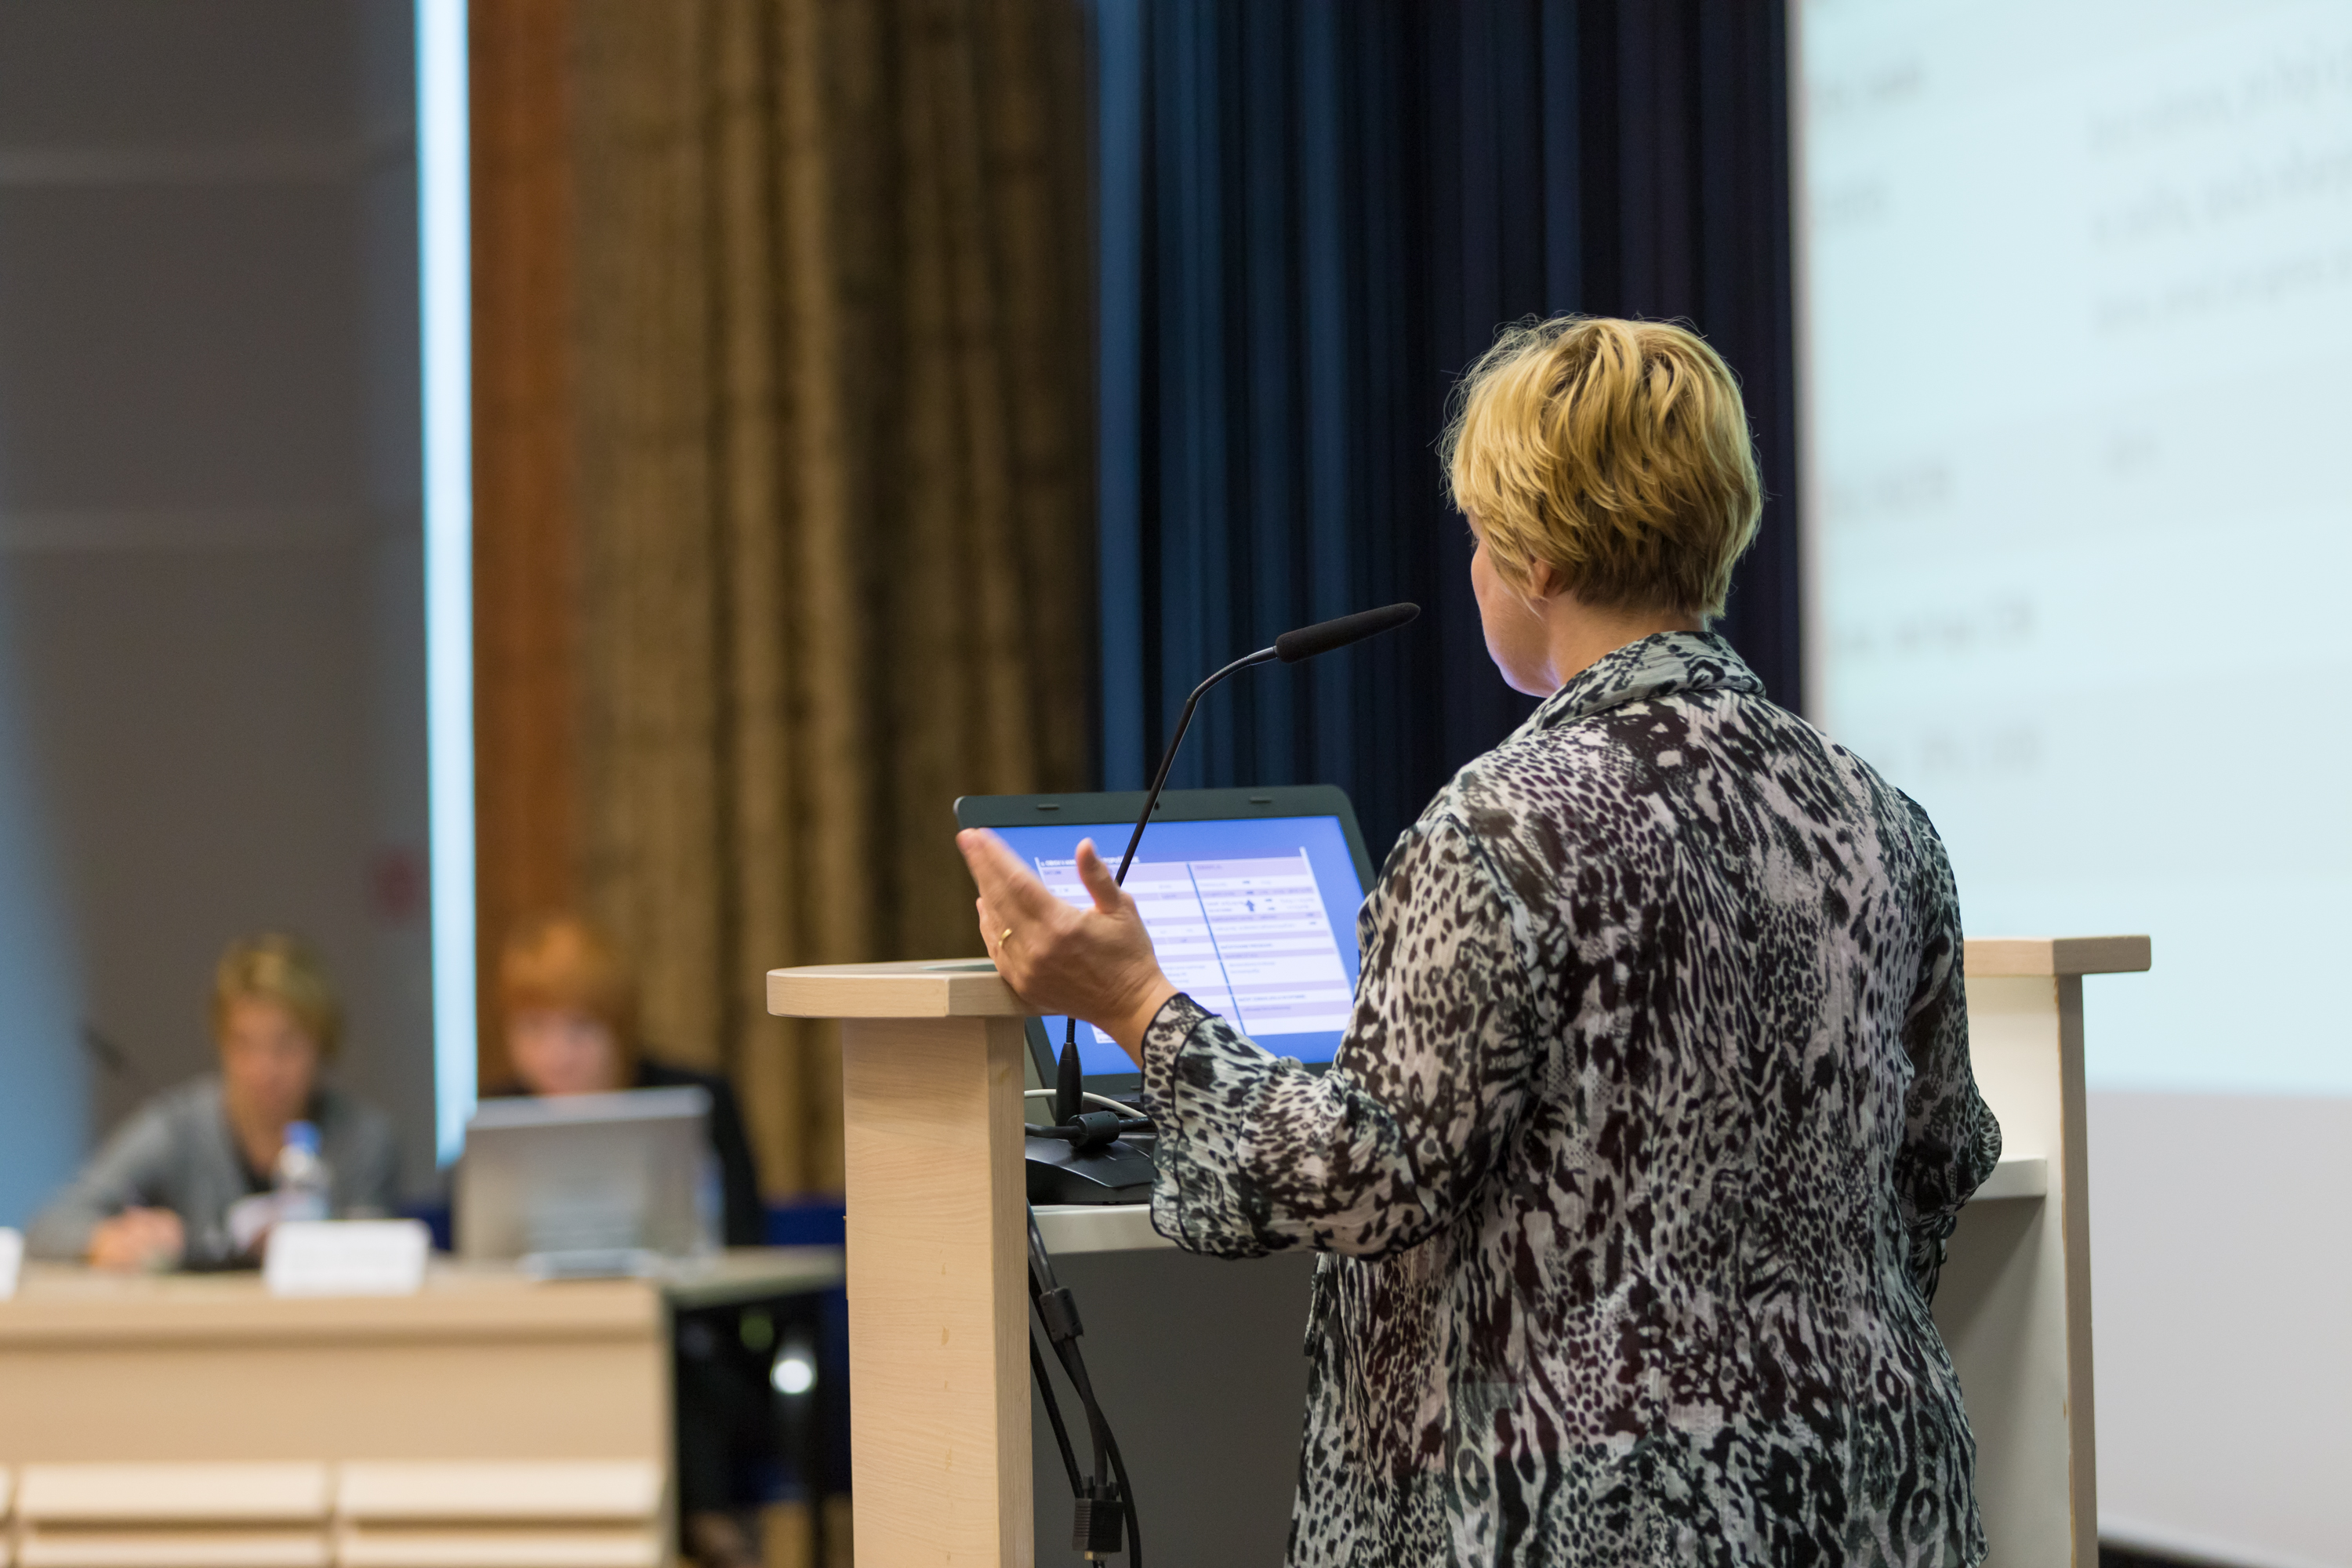 Blond female speaker presents at a scientific conference